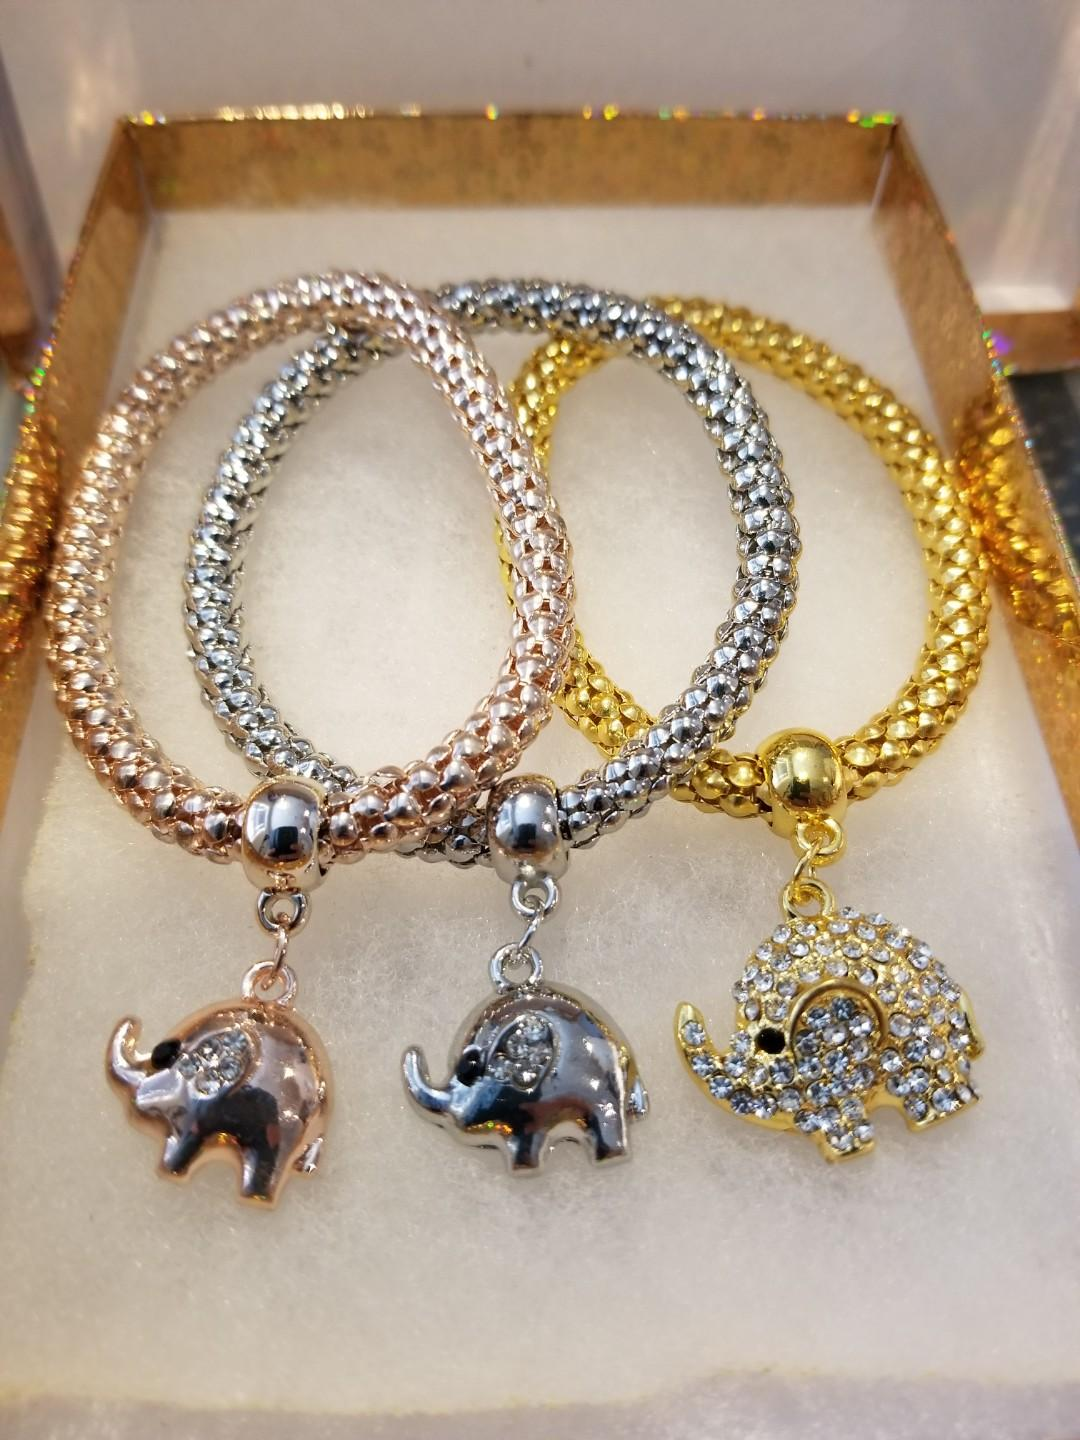 Rose gold, silver and gold elephant bracelets